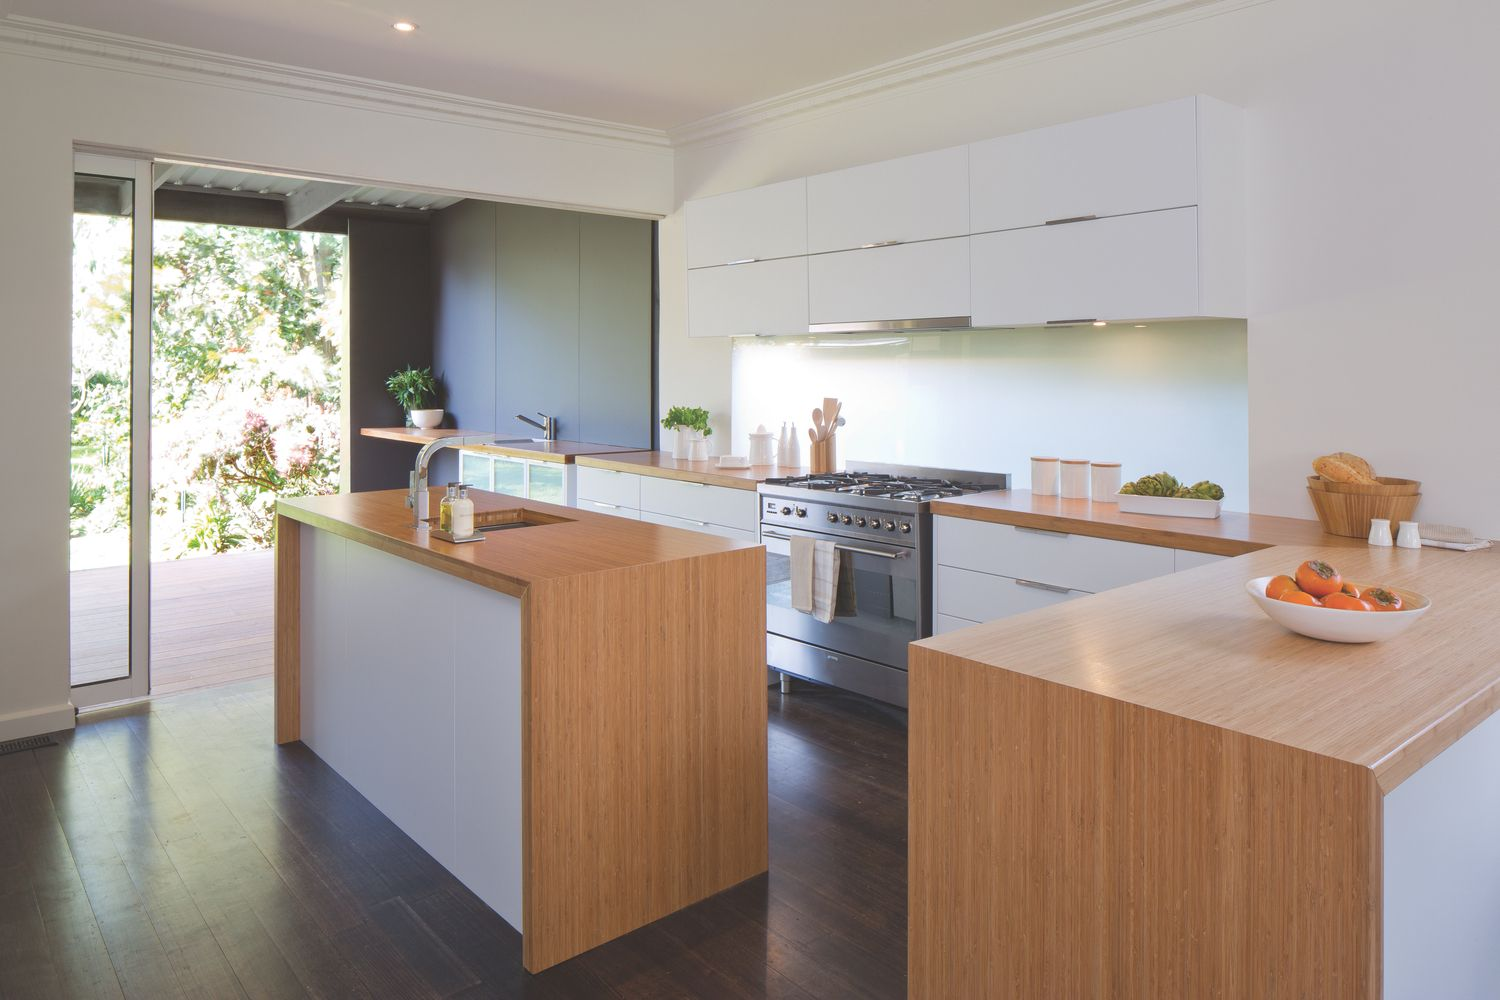 flat pack kitchens gallery beautiful on the inside and out thumb 100 renovated house on kaboodle kitchen design id=60310